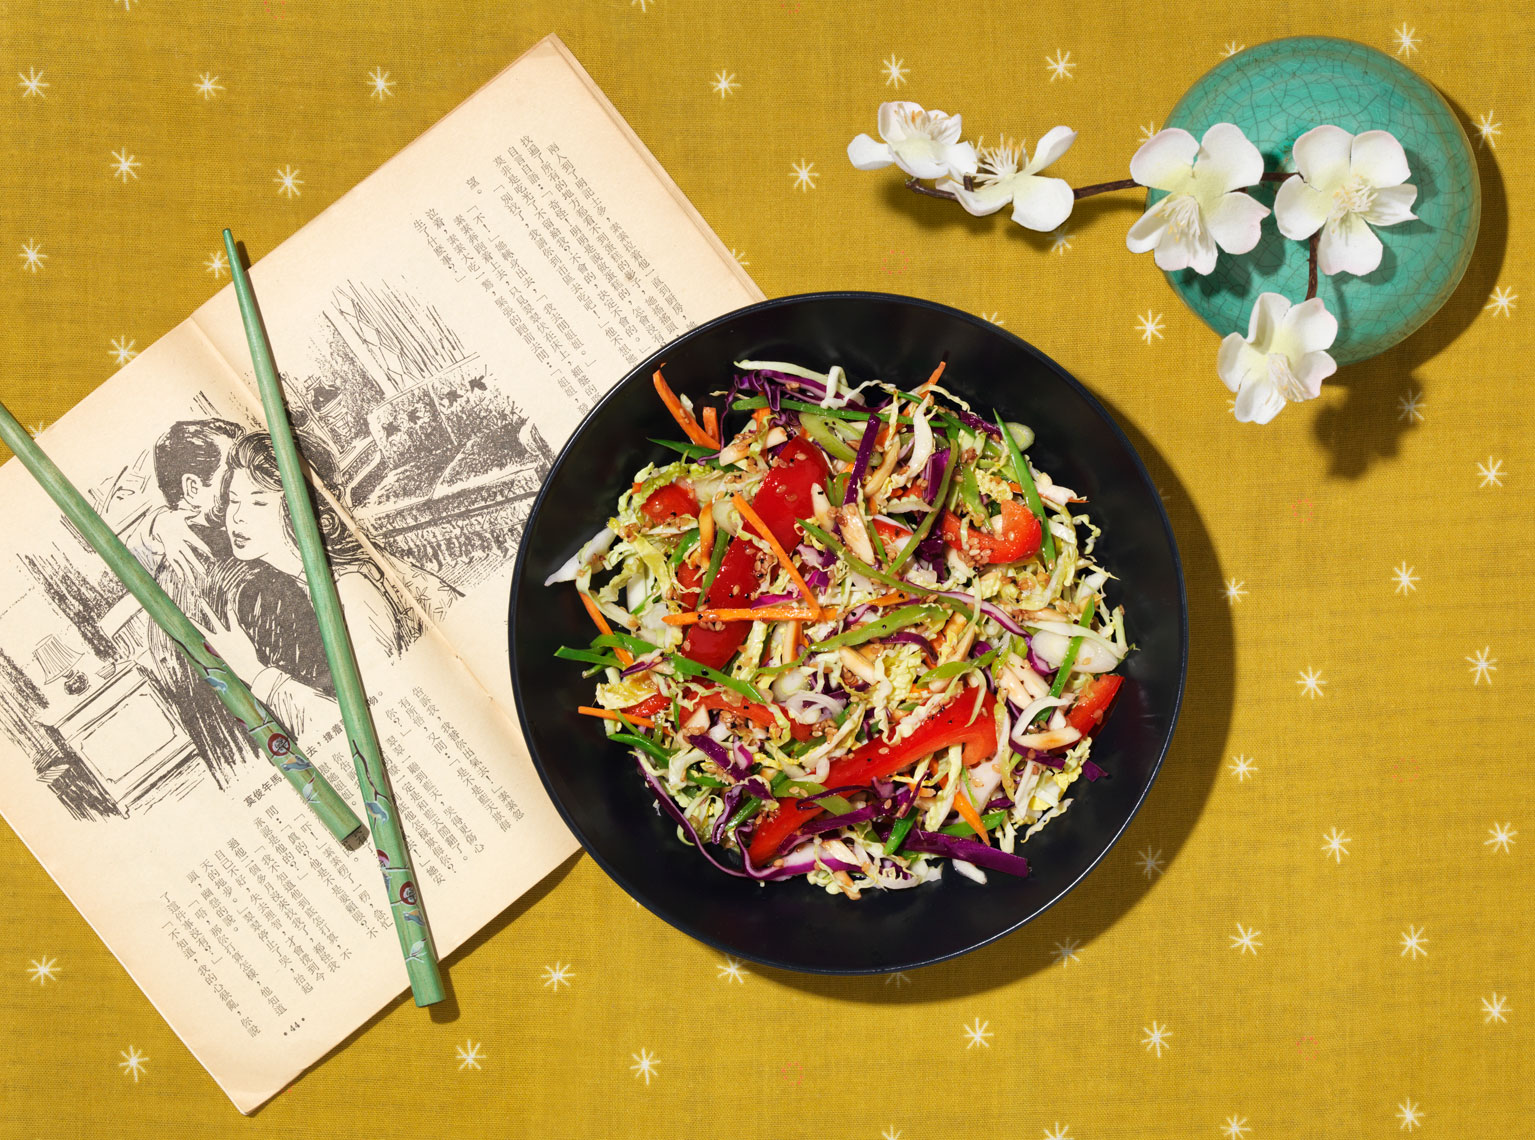 asian slaw with red peppers on mustard yellow placemat